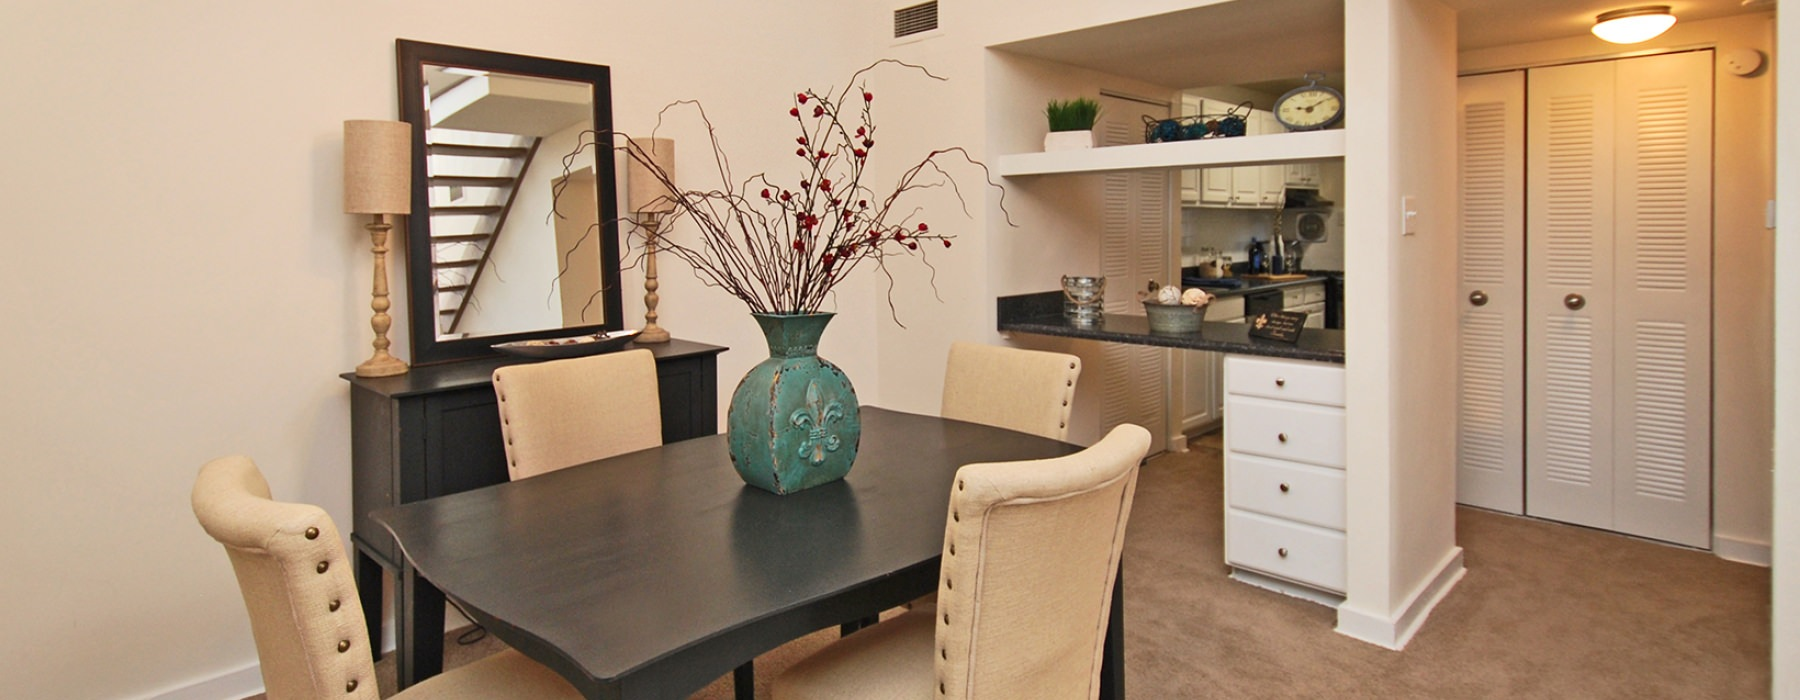 open rossmore dining area with view of the kitchen